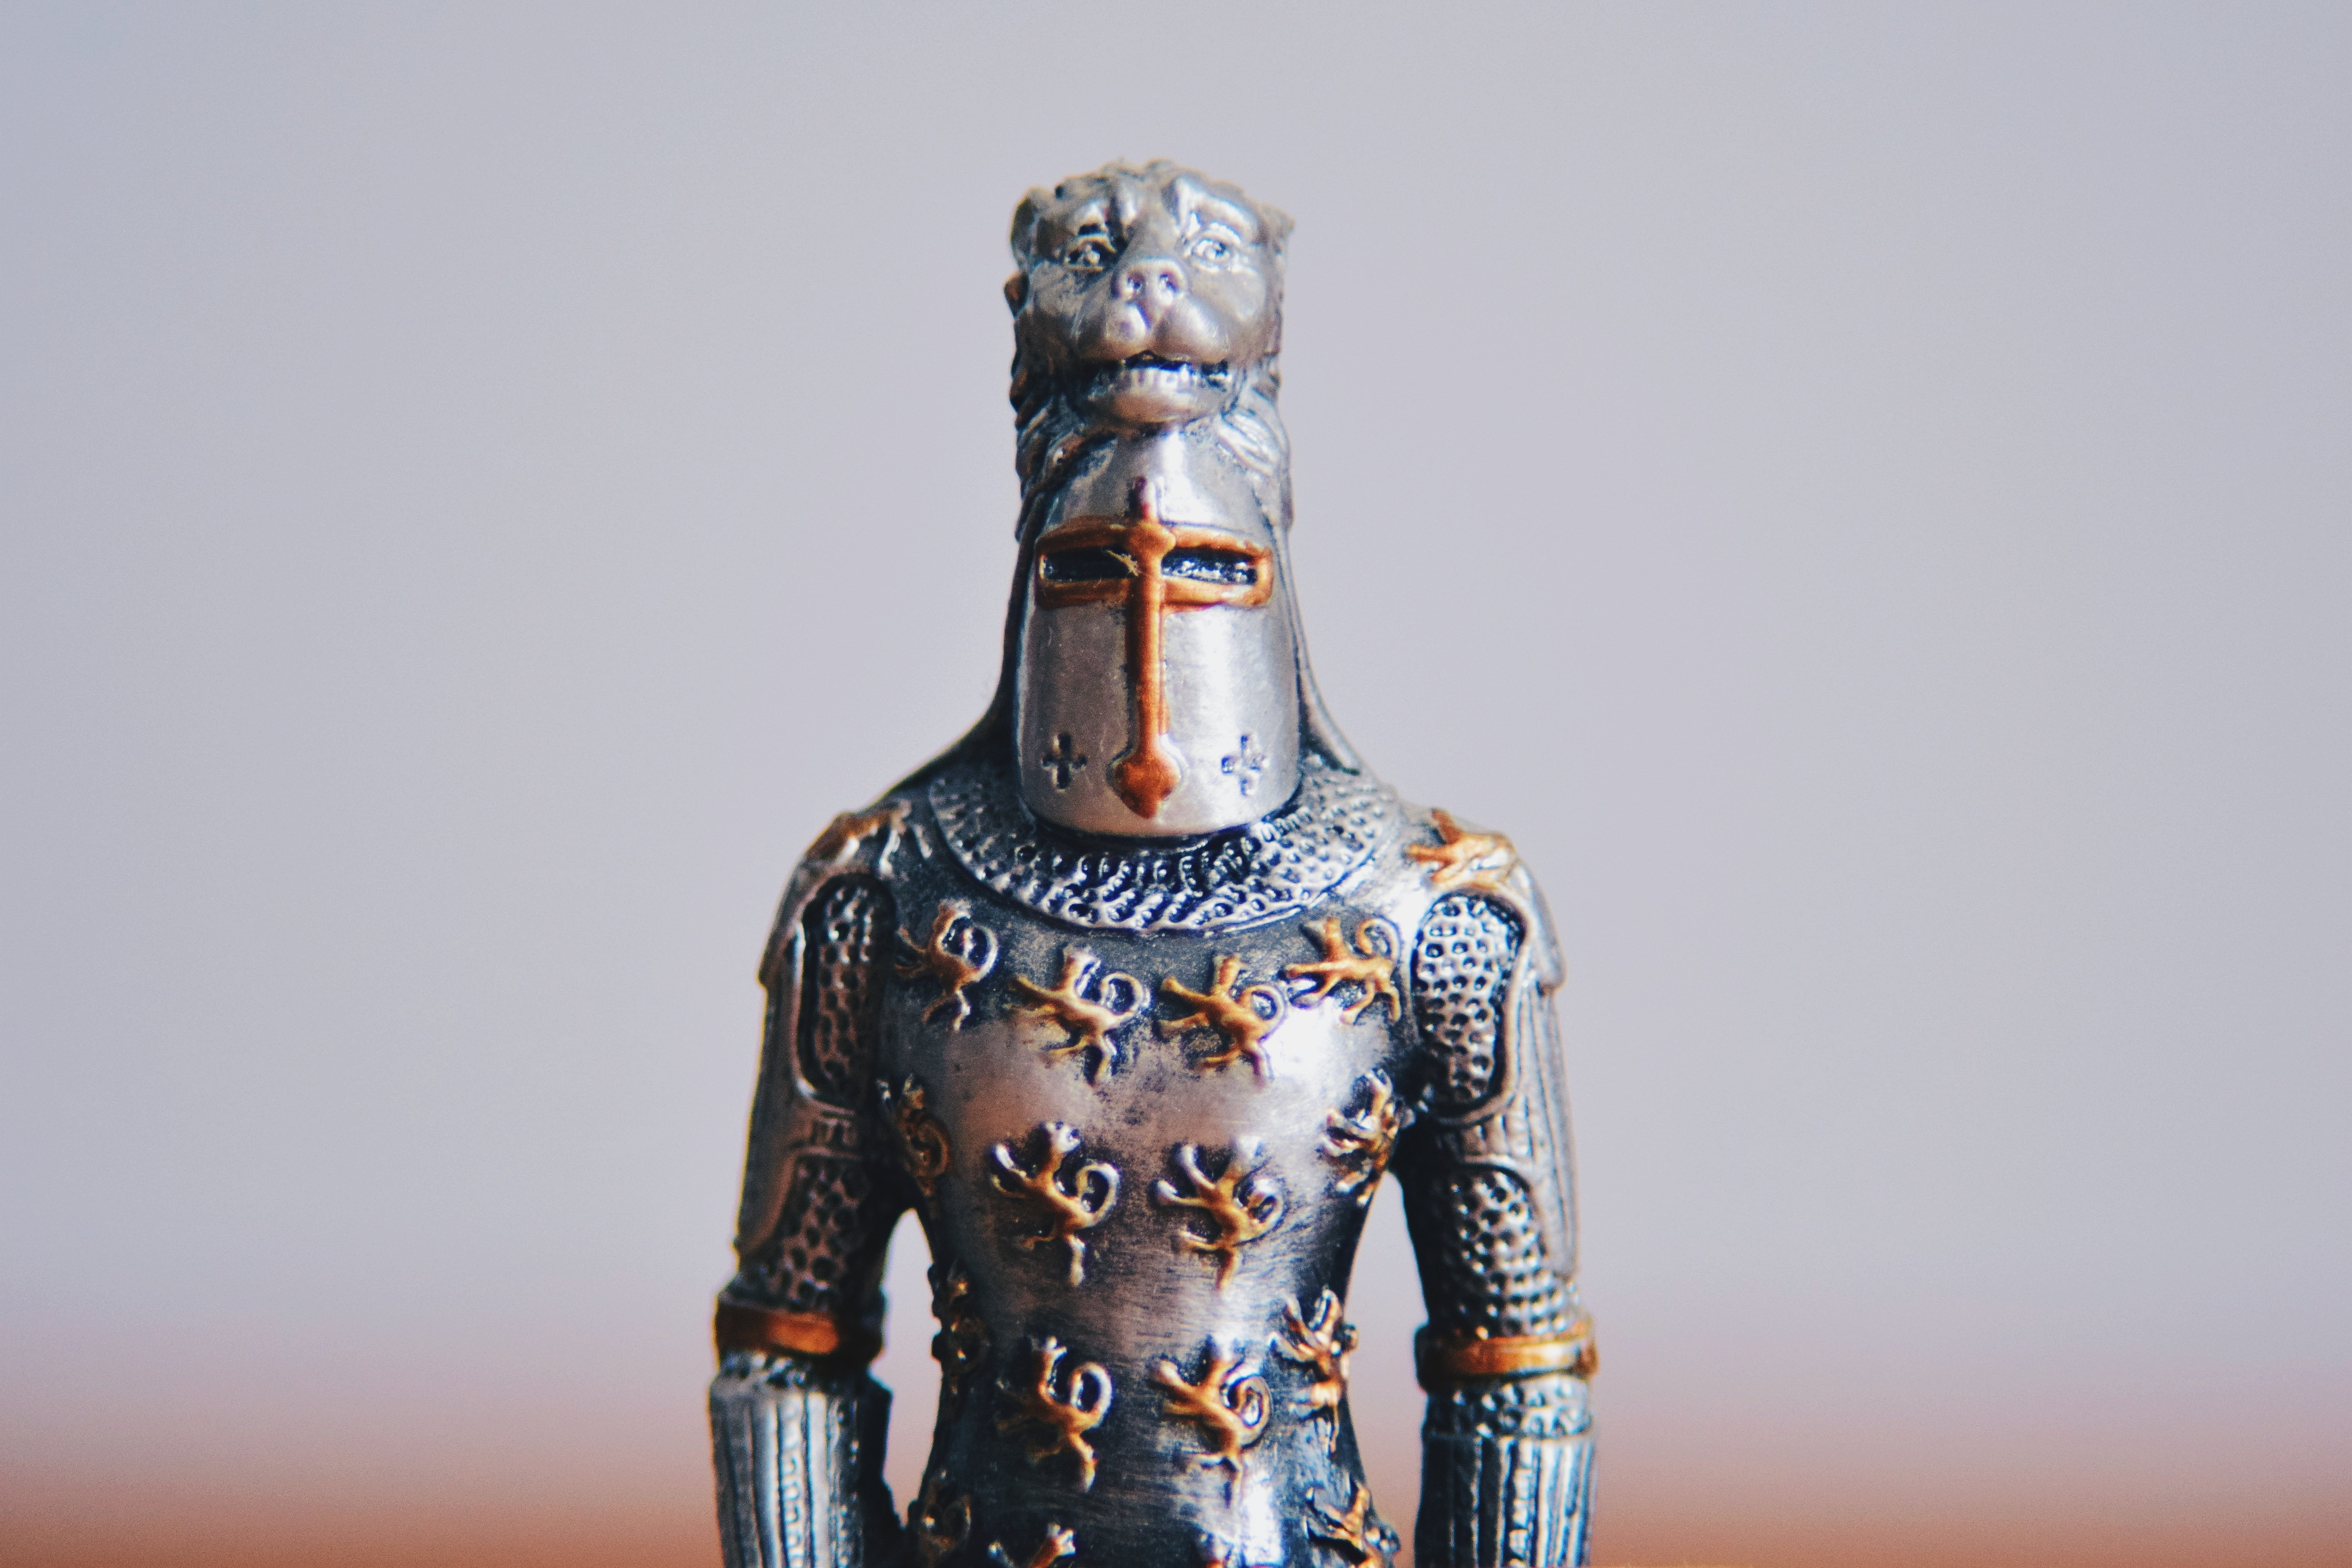 Silver knight with lion headpiece and gold engraved lions